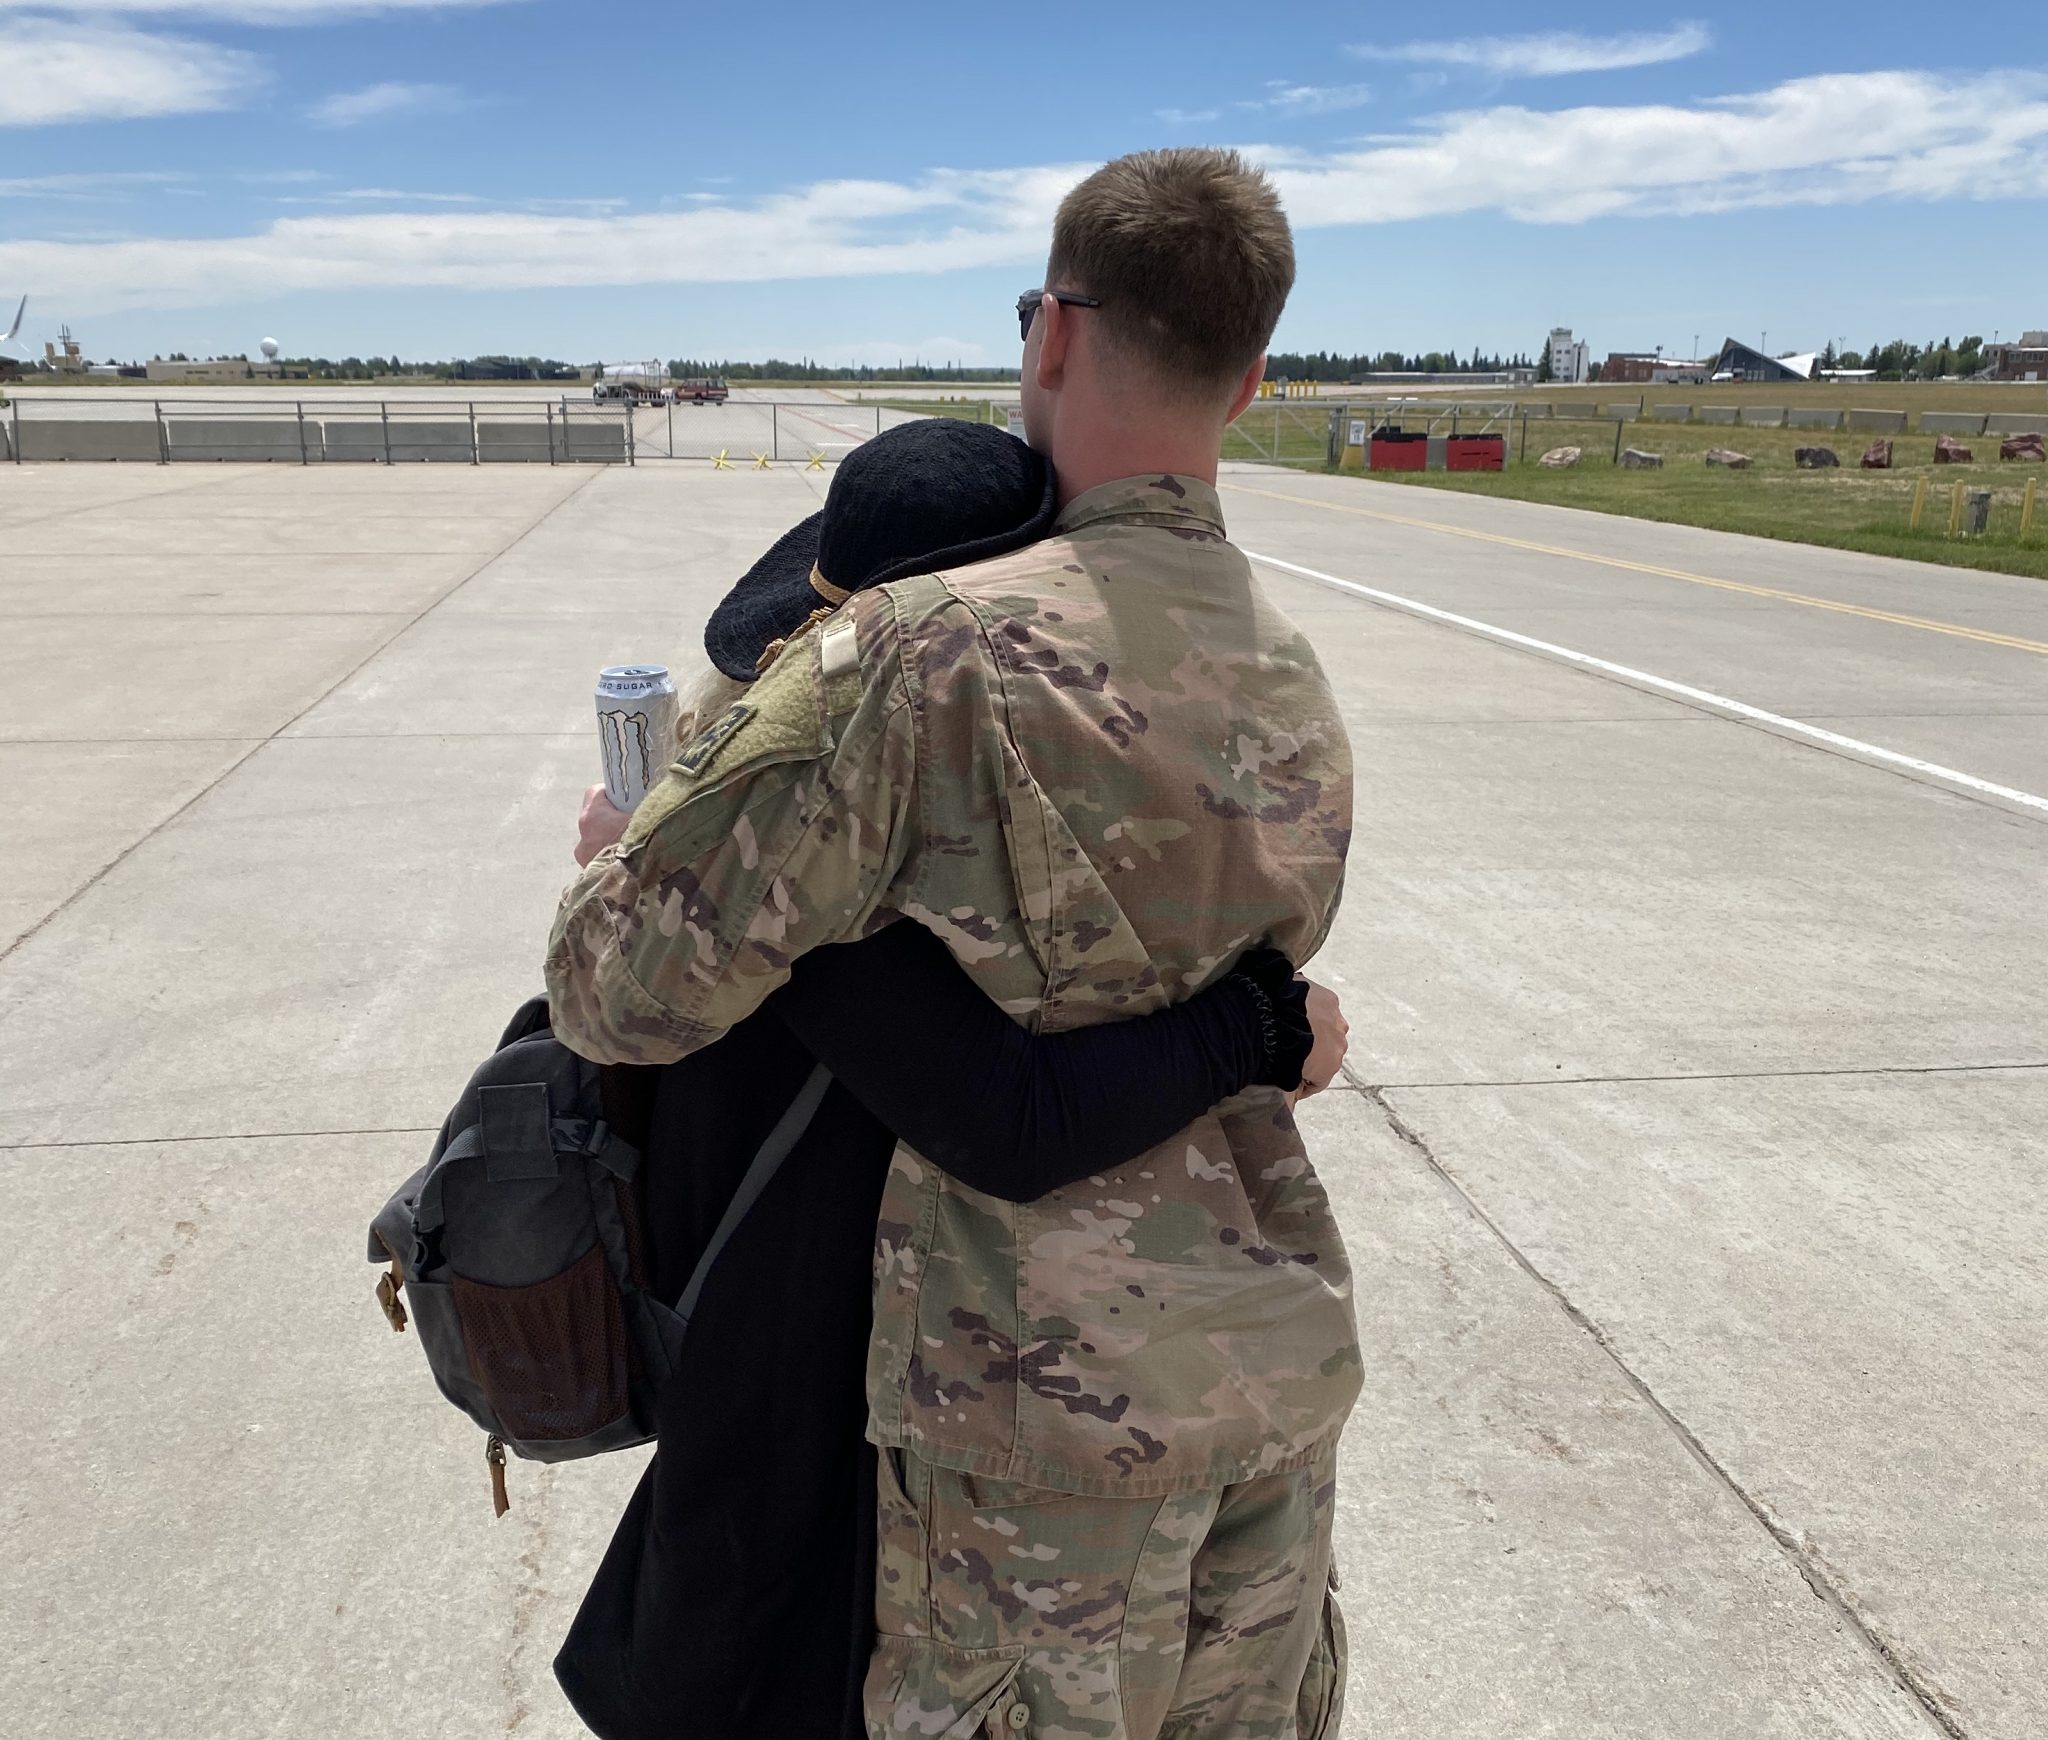 Cpl. Grant Byelich and his sister, Brooke Byelich, embrace following his return from deployment.